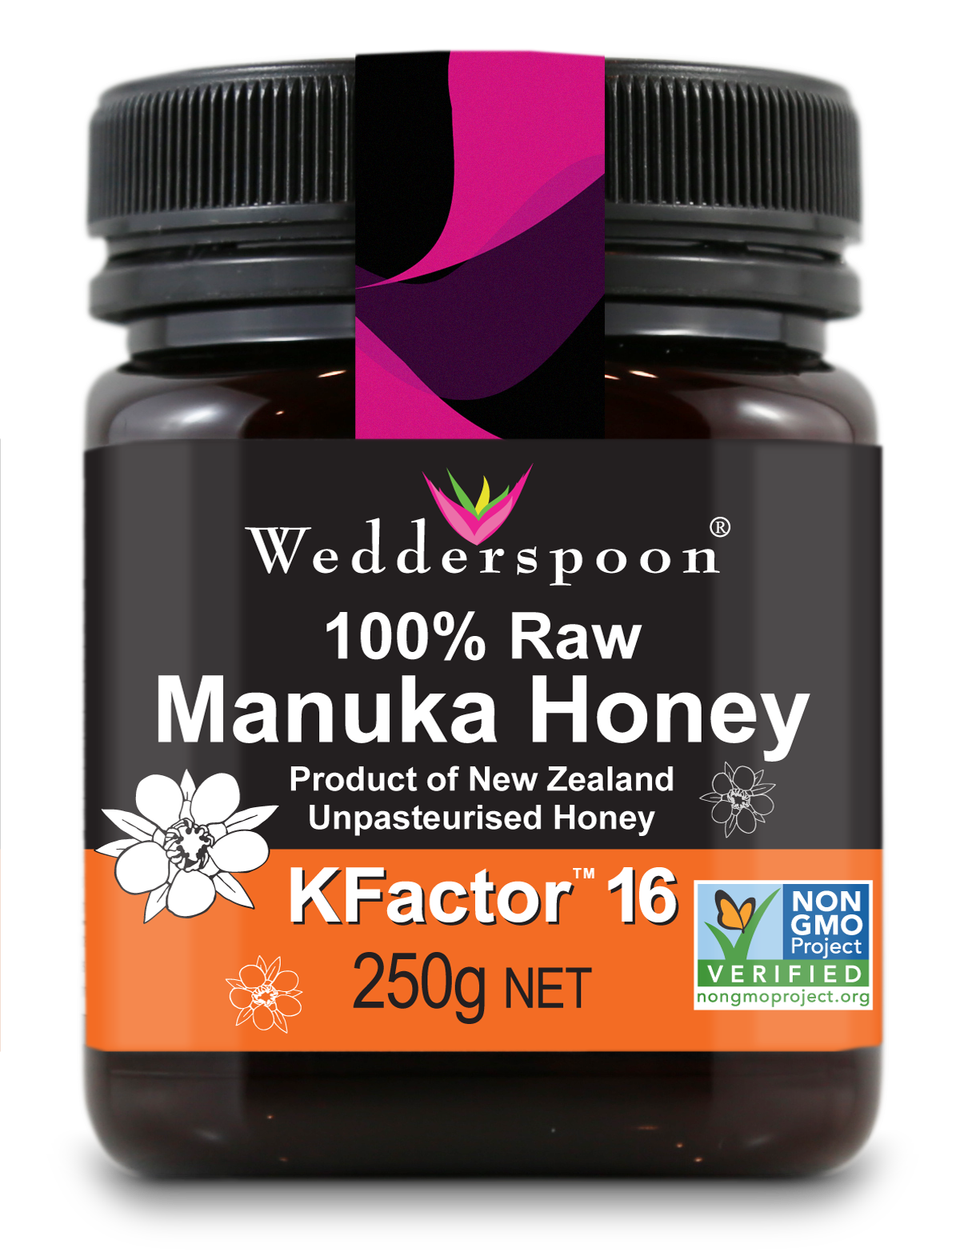 100% Raw Manuka Kfactor 16 Honey 250g.